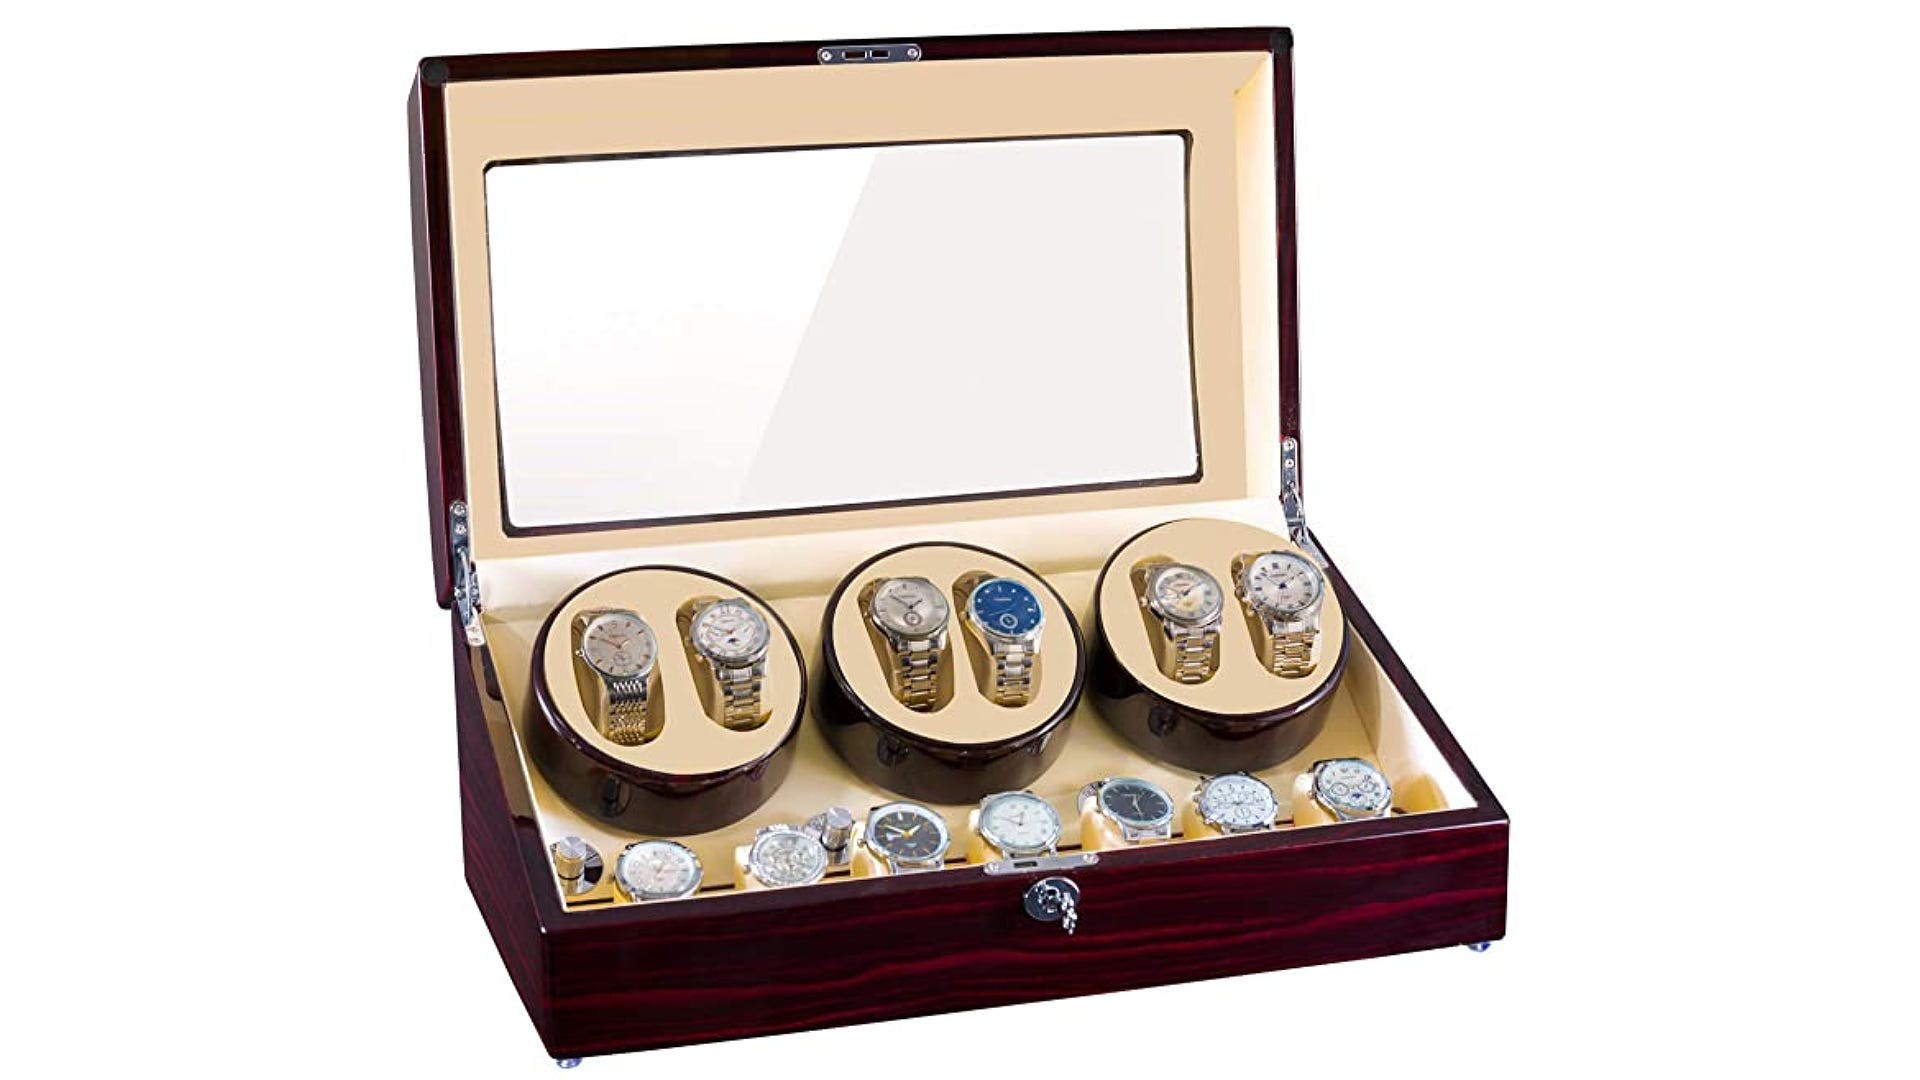 An opened wooden watch winder box that holds multiple watches inside.